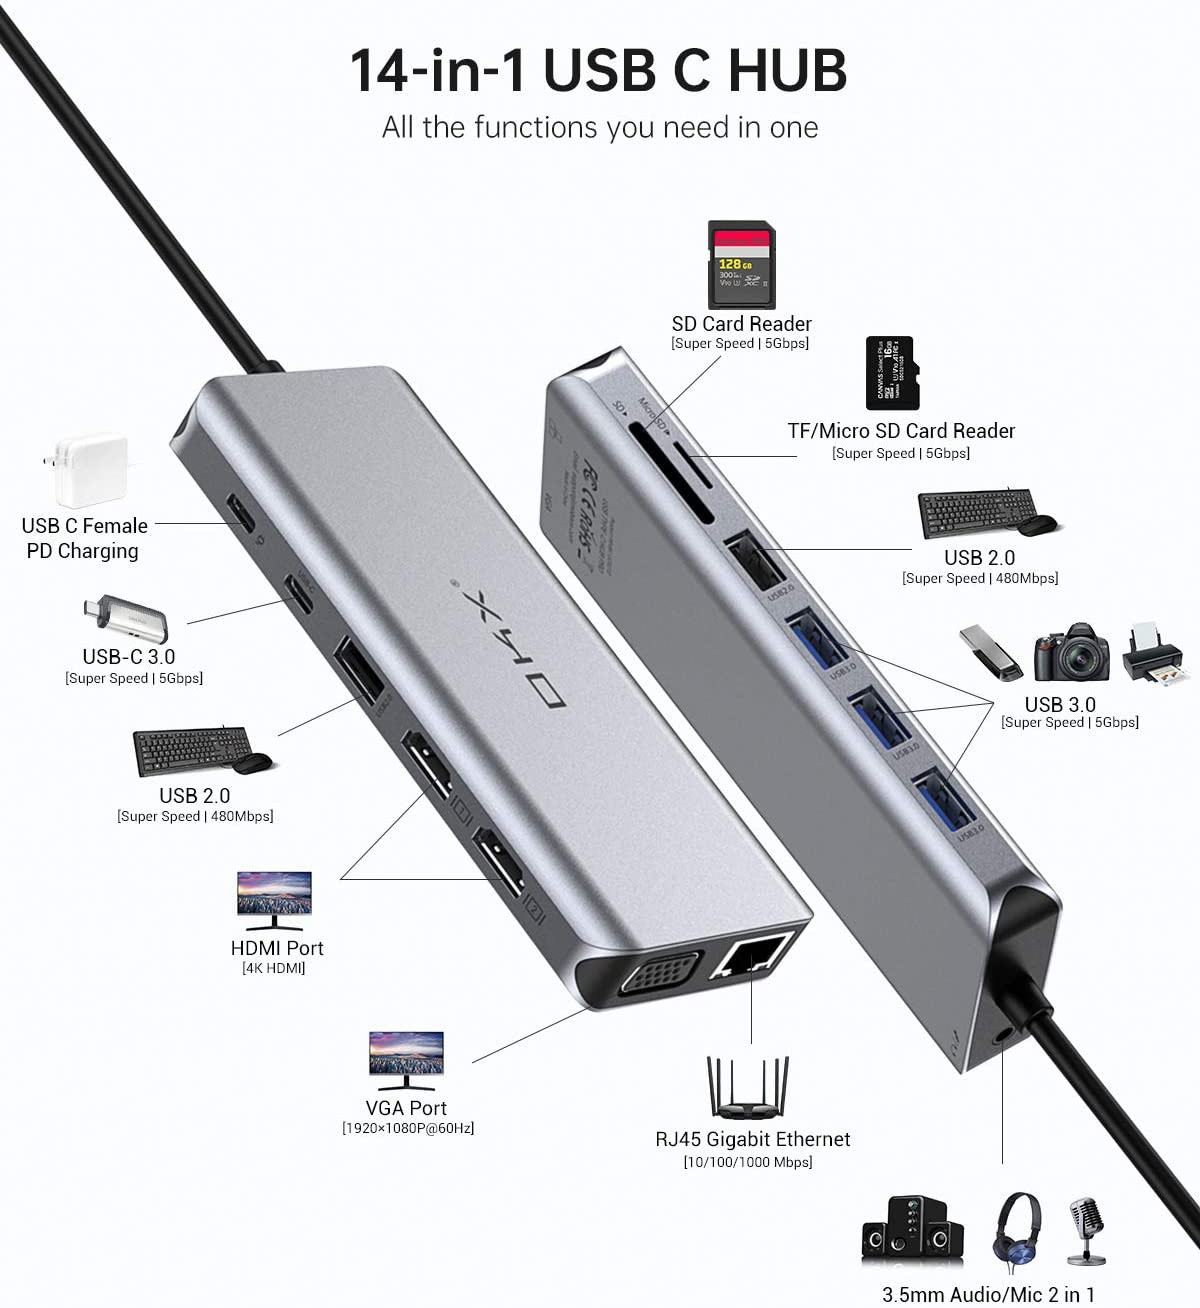 USB C Hub, OKX 14 in 1 USB C to Triple Display Adapter with 100W PD Charging, 2 HDMI, VGA, USB-C Data Transfer, 3 USB 3.0 Ports, 2 USB 2.0 Ports, SD/TF Card Readers for MacBook Pro and Type C Laptops